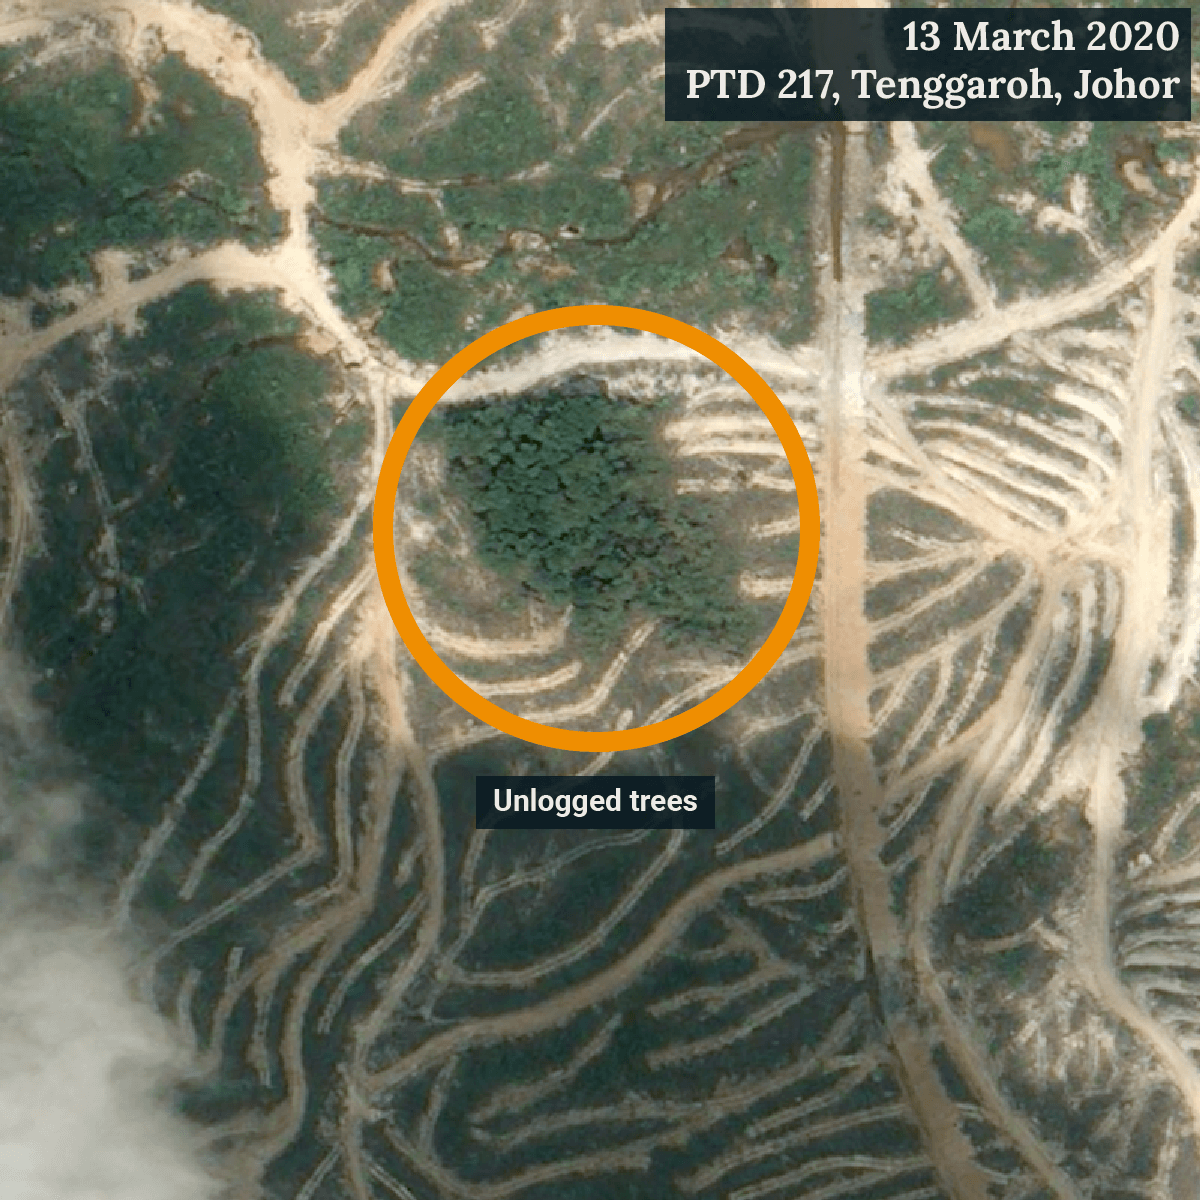 Close-up view of unlogged trees which might be a cluster of endangered Meranti telopok (Shorea peltata). (Satellite image ©CNES 2020 Distribution Airbus DS / Earthrise)